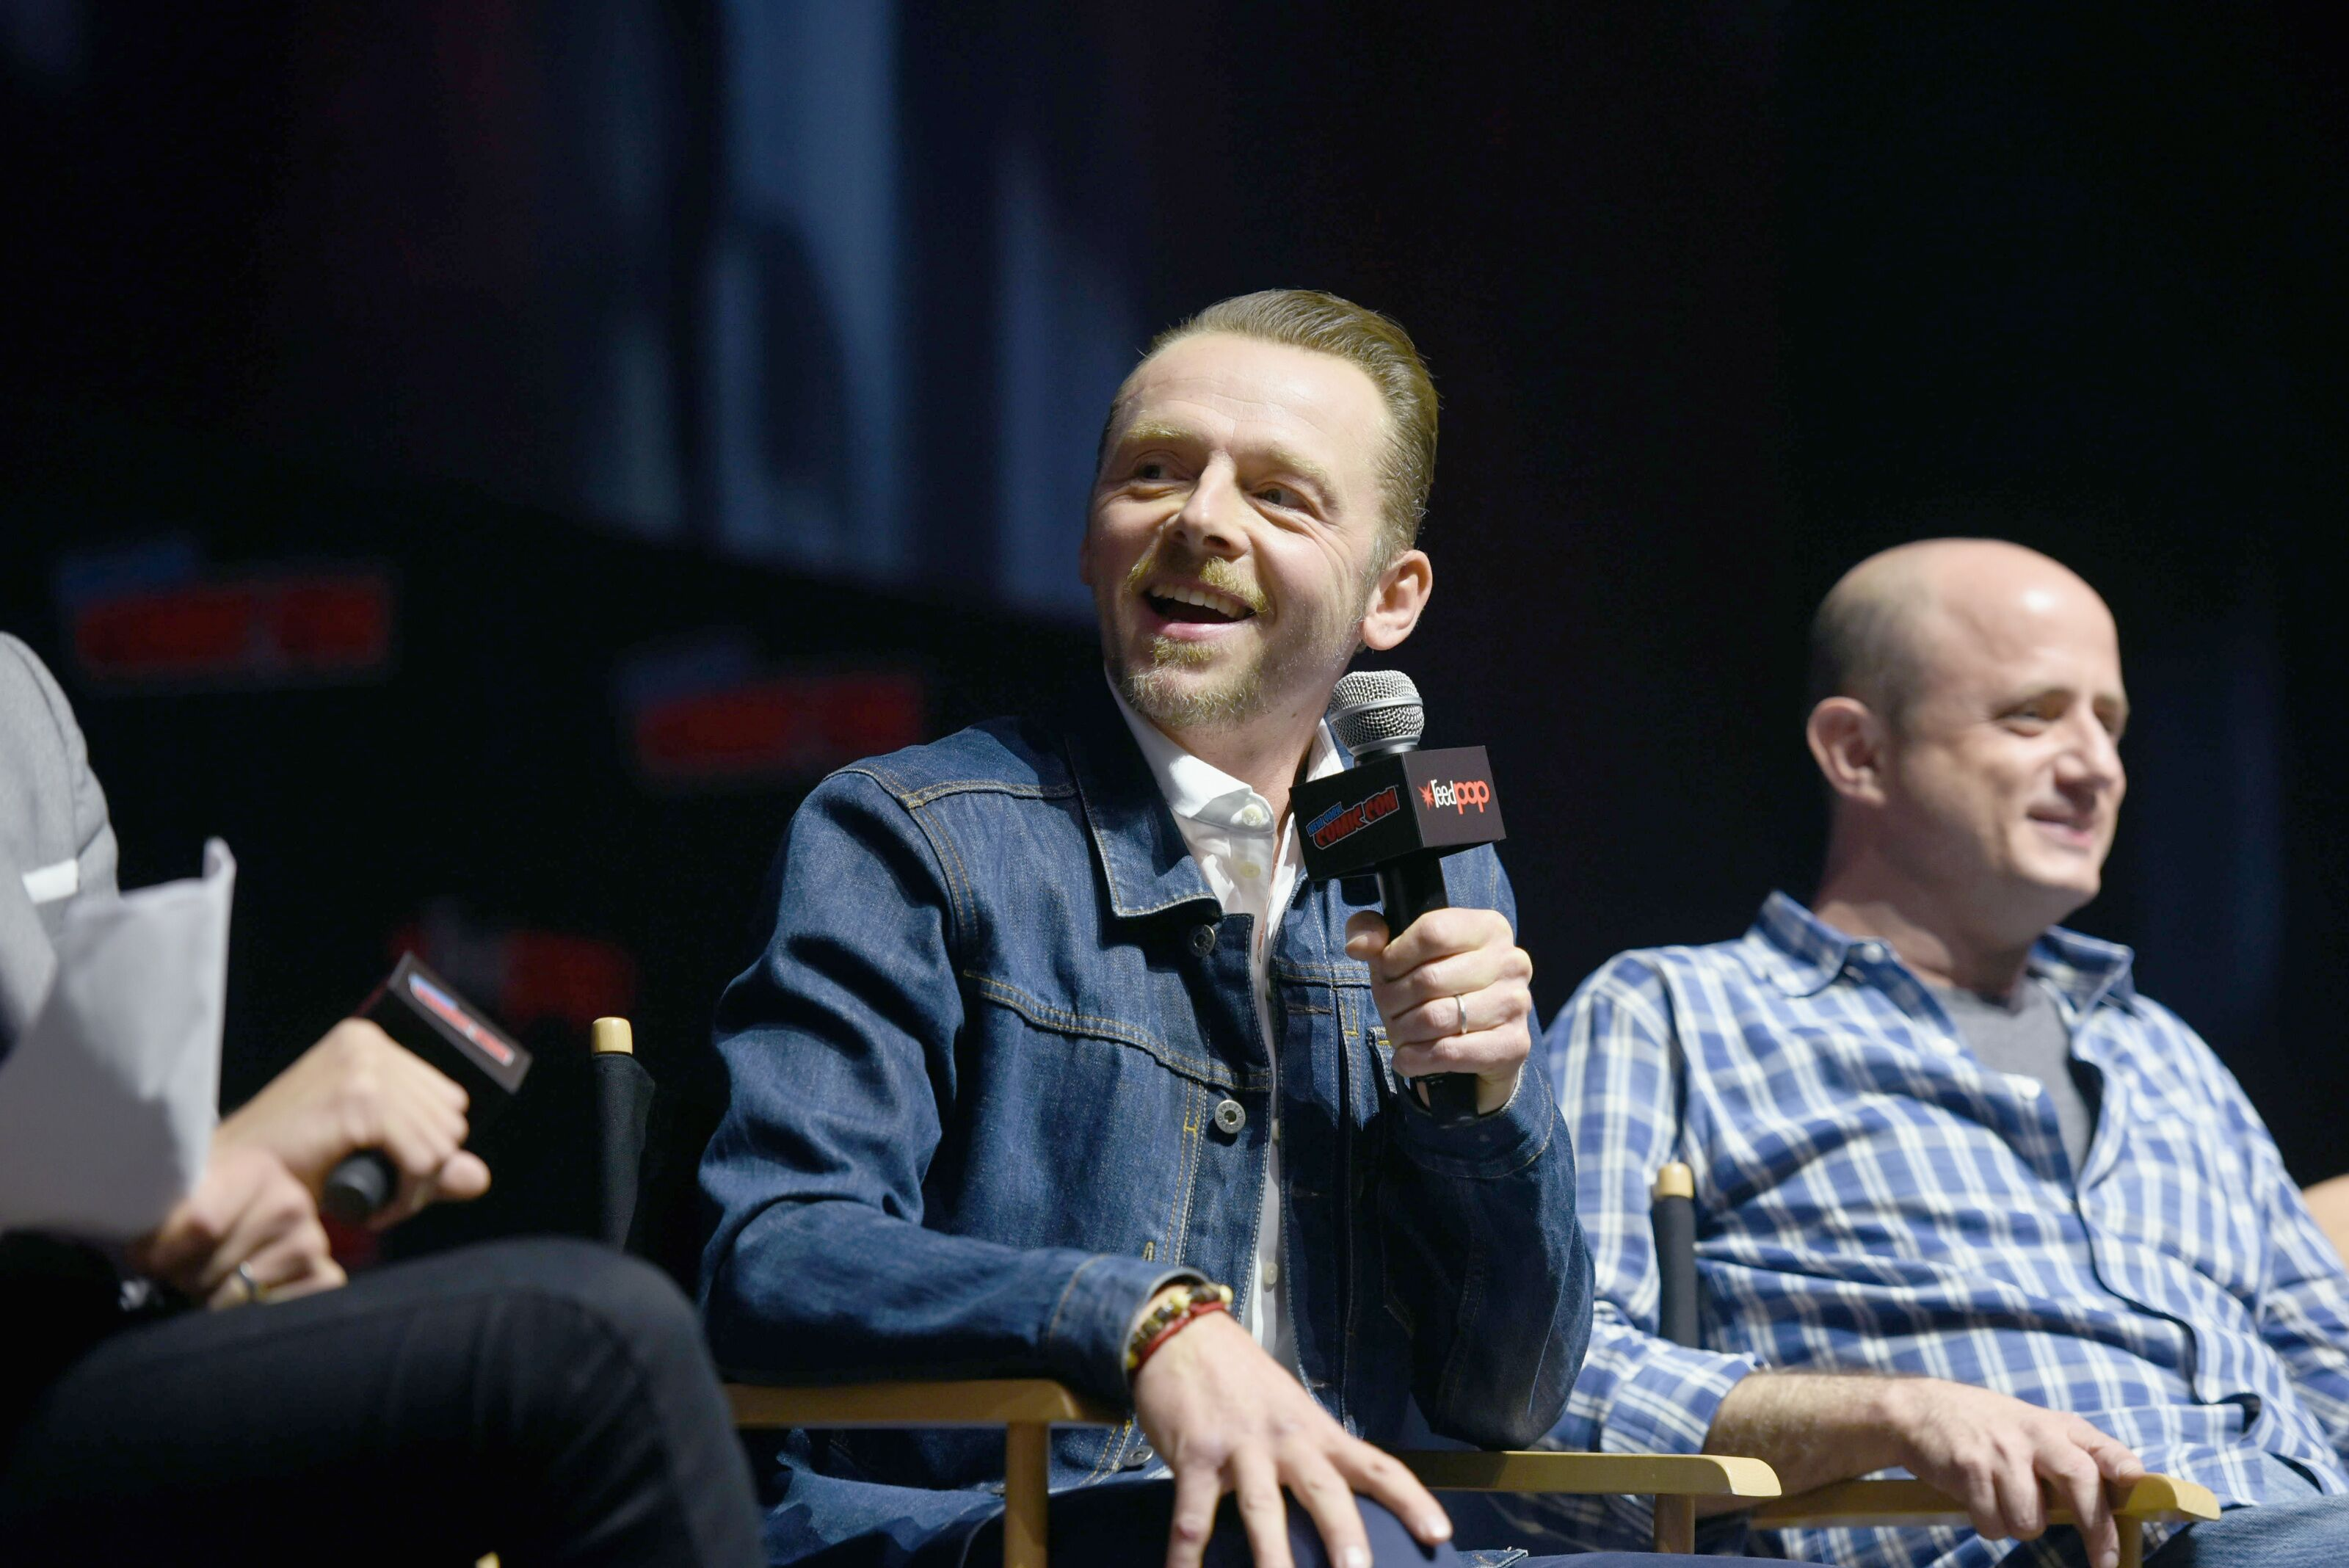 Simon Pegg changes his view of George Lucas and Star Wars